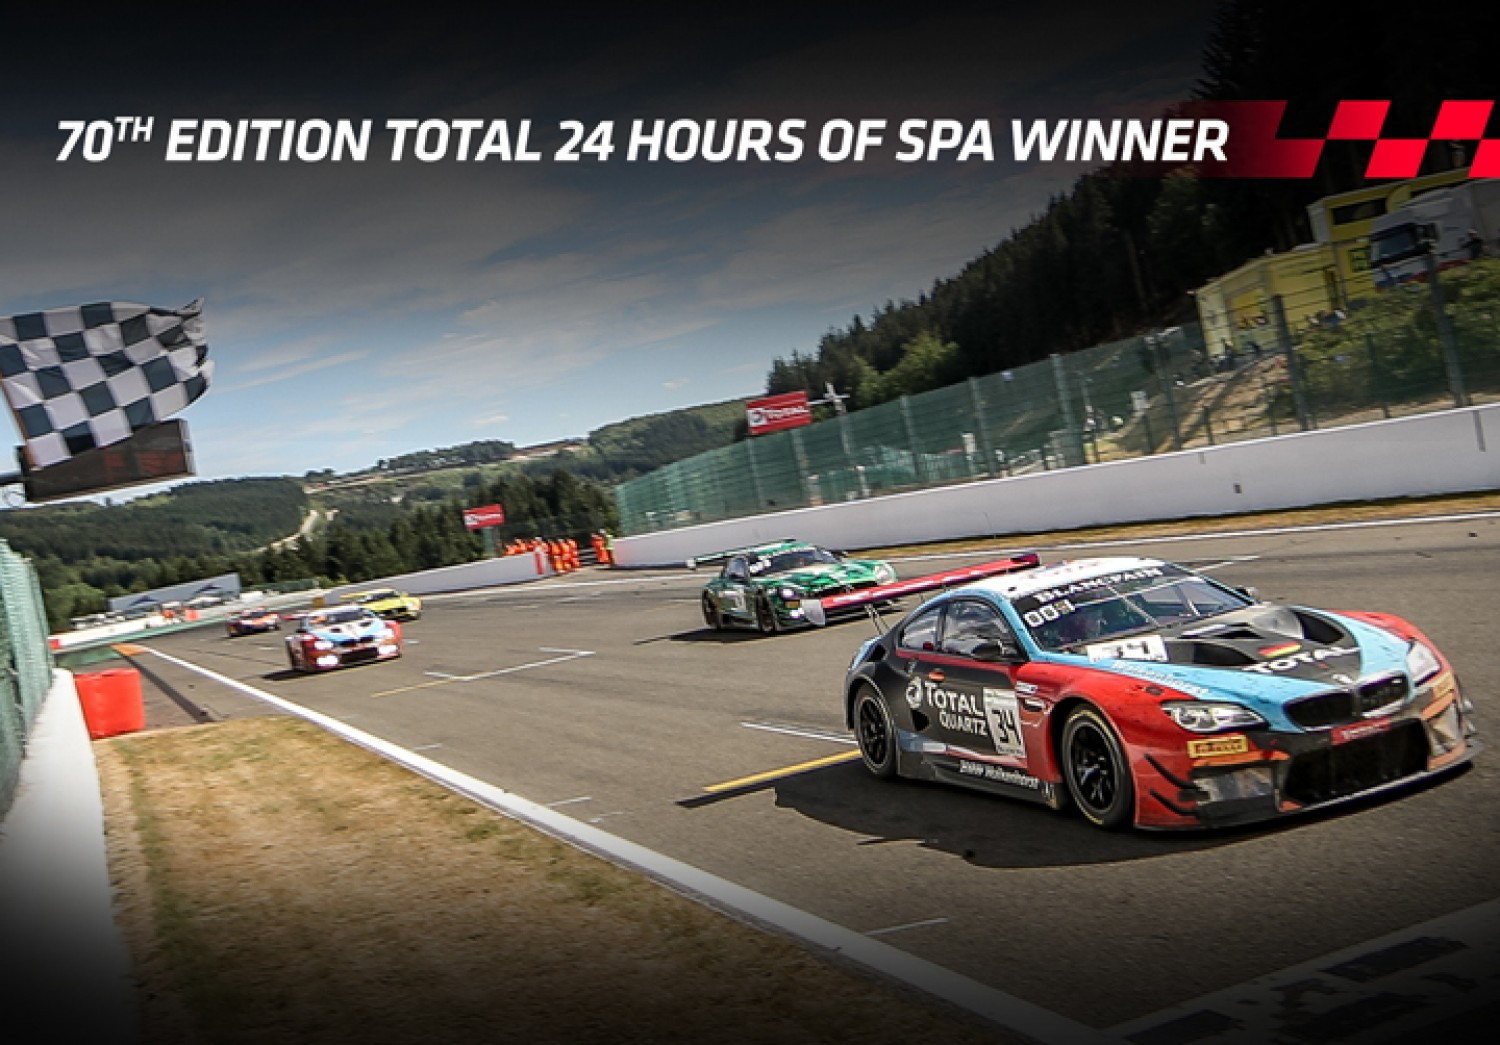 Walkenhorst Motorsport secures record-extending Total 24 Hours of Spa victory for BMW at landmark 70th edition